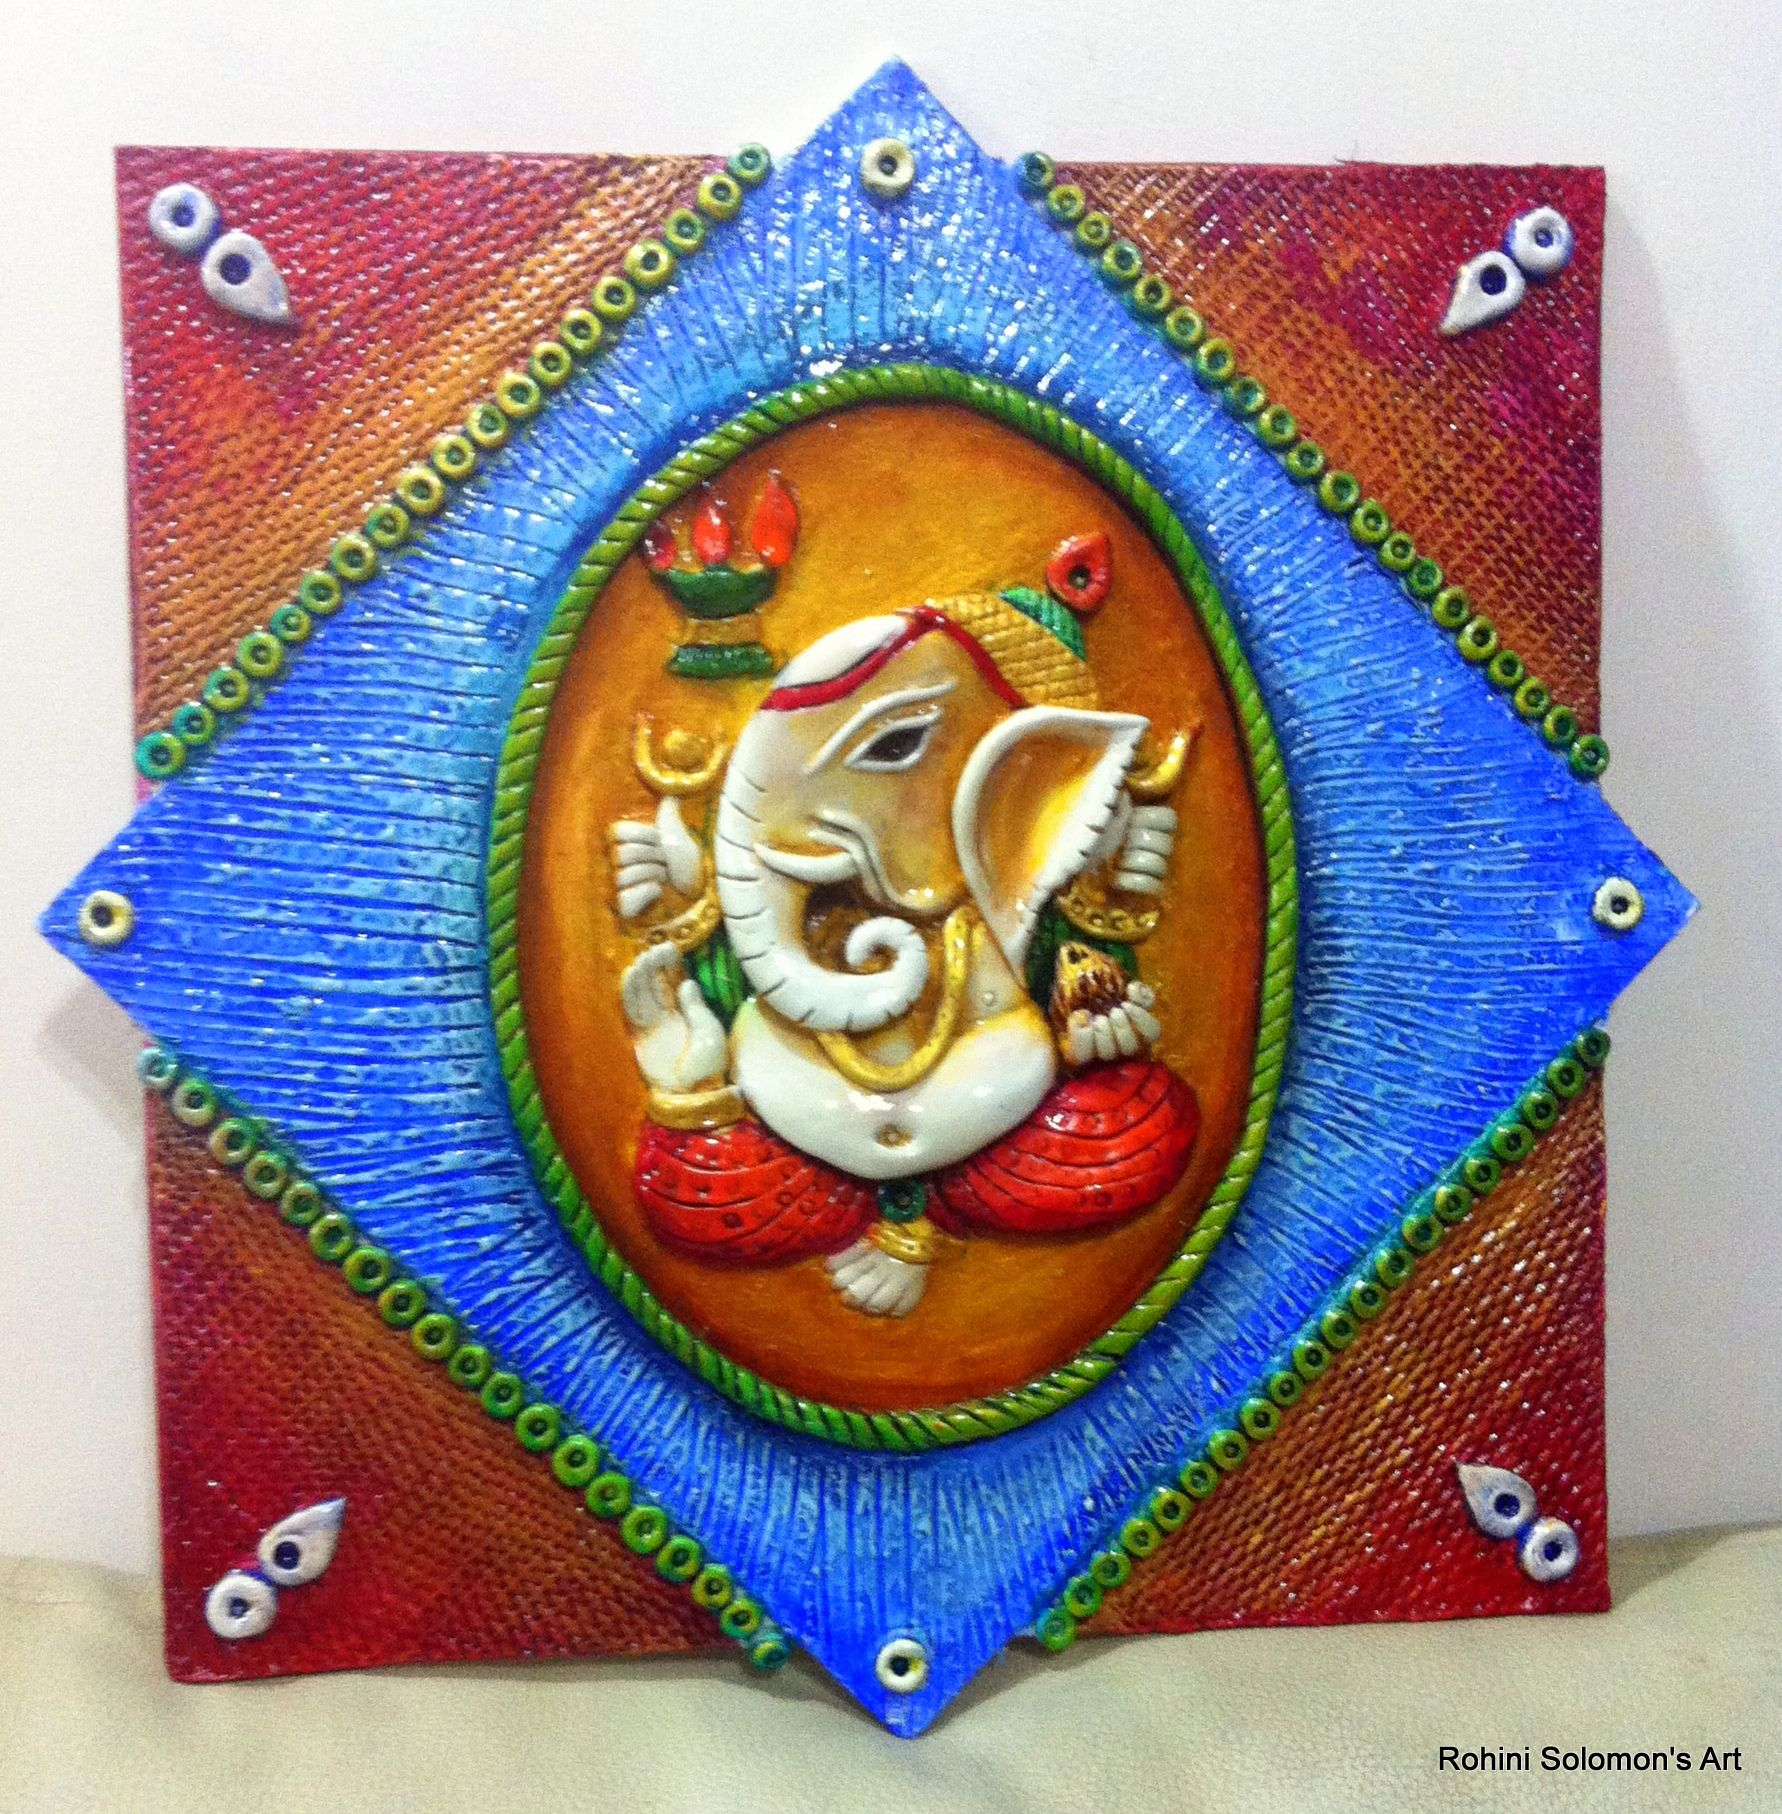 Ganesha mural clay murals and more by rohini solomon for Mural art of ganesha